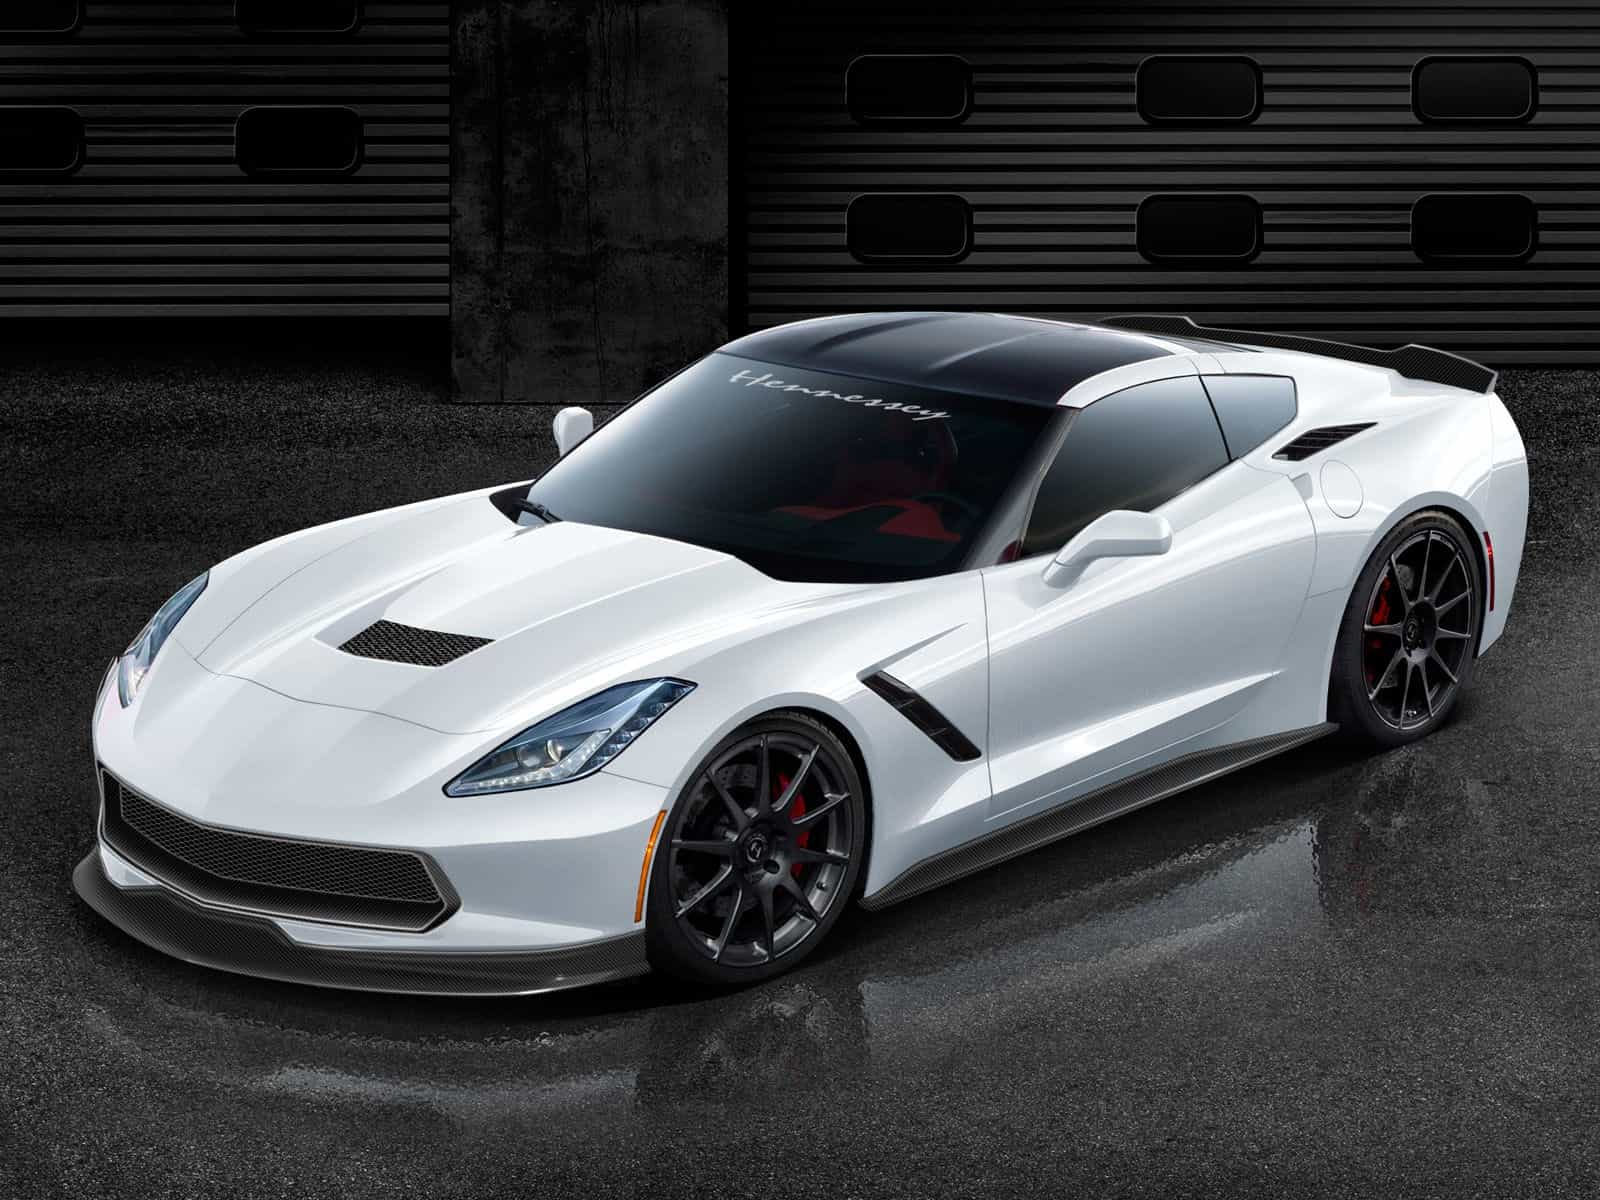 Hennessey Performance tuned C7 Corvette